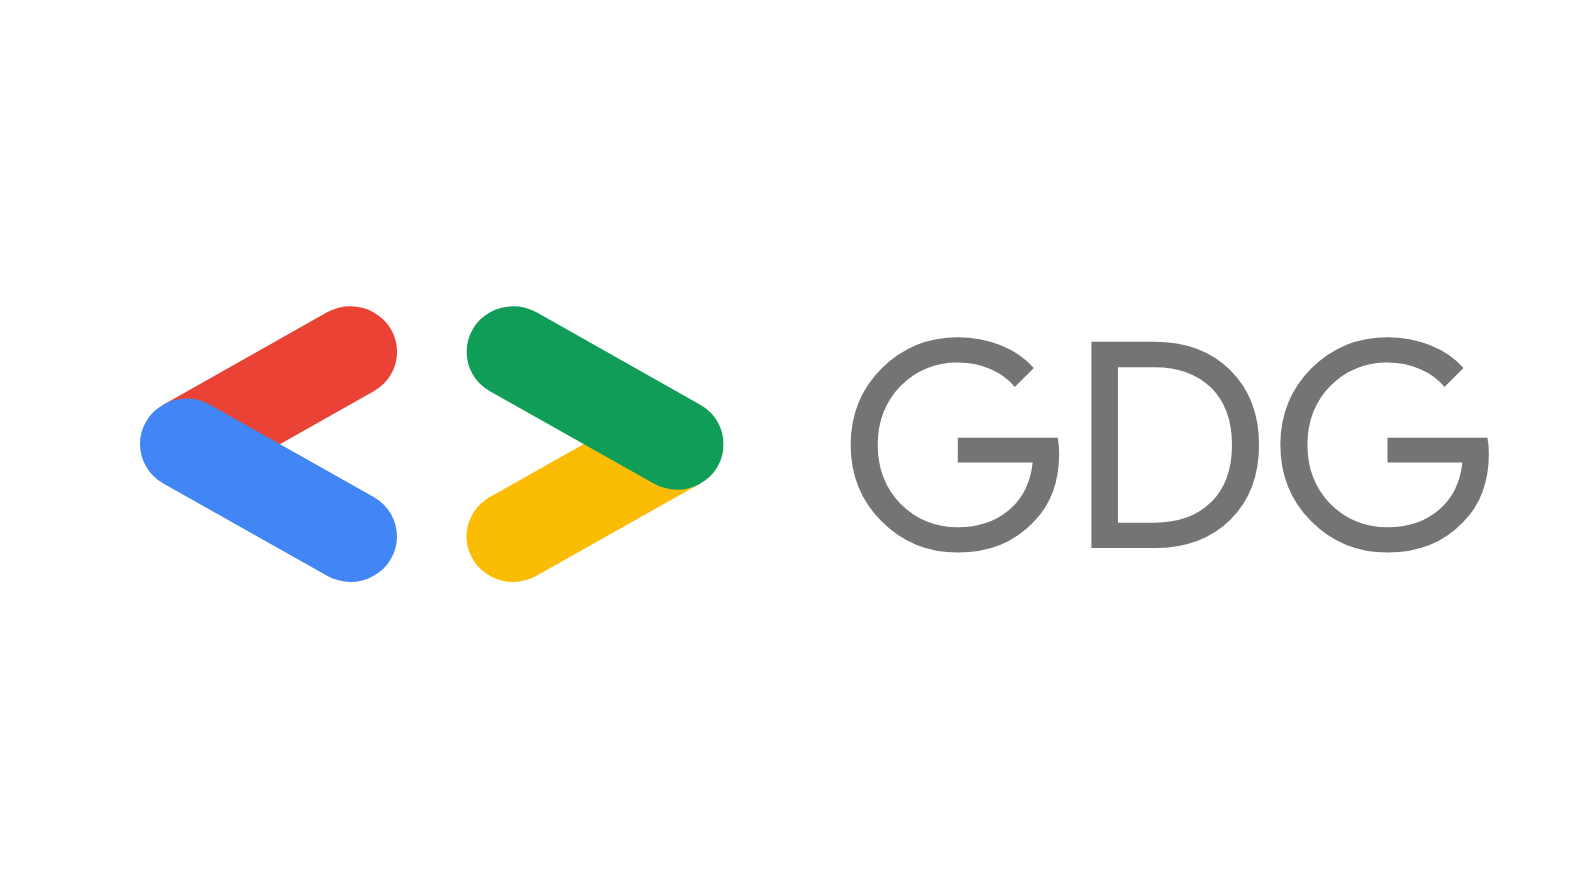 GDG Moscow